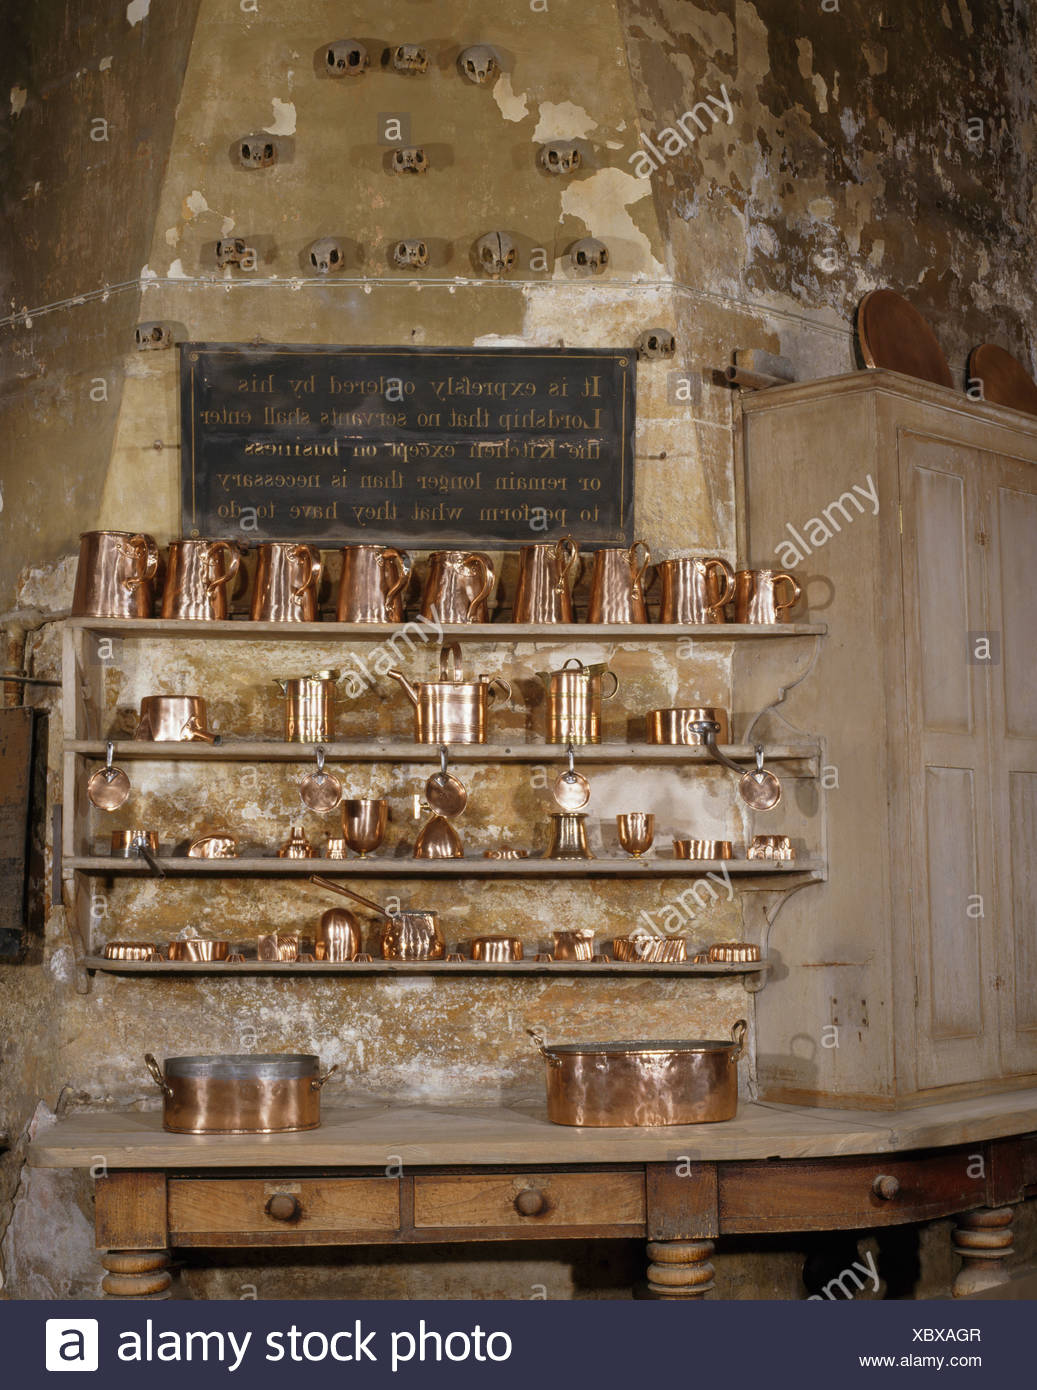 Antique Copper Jugs And Cooking Equipment On Wooden Shelves In Large Old  Kitchen